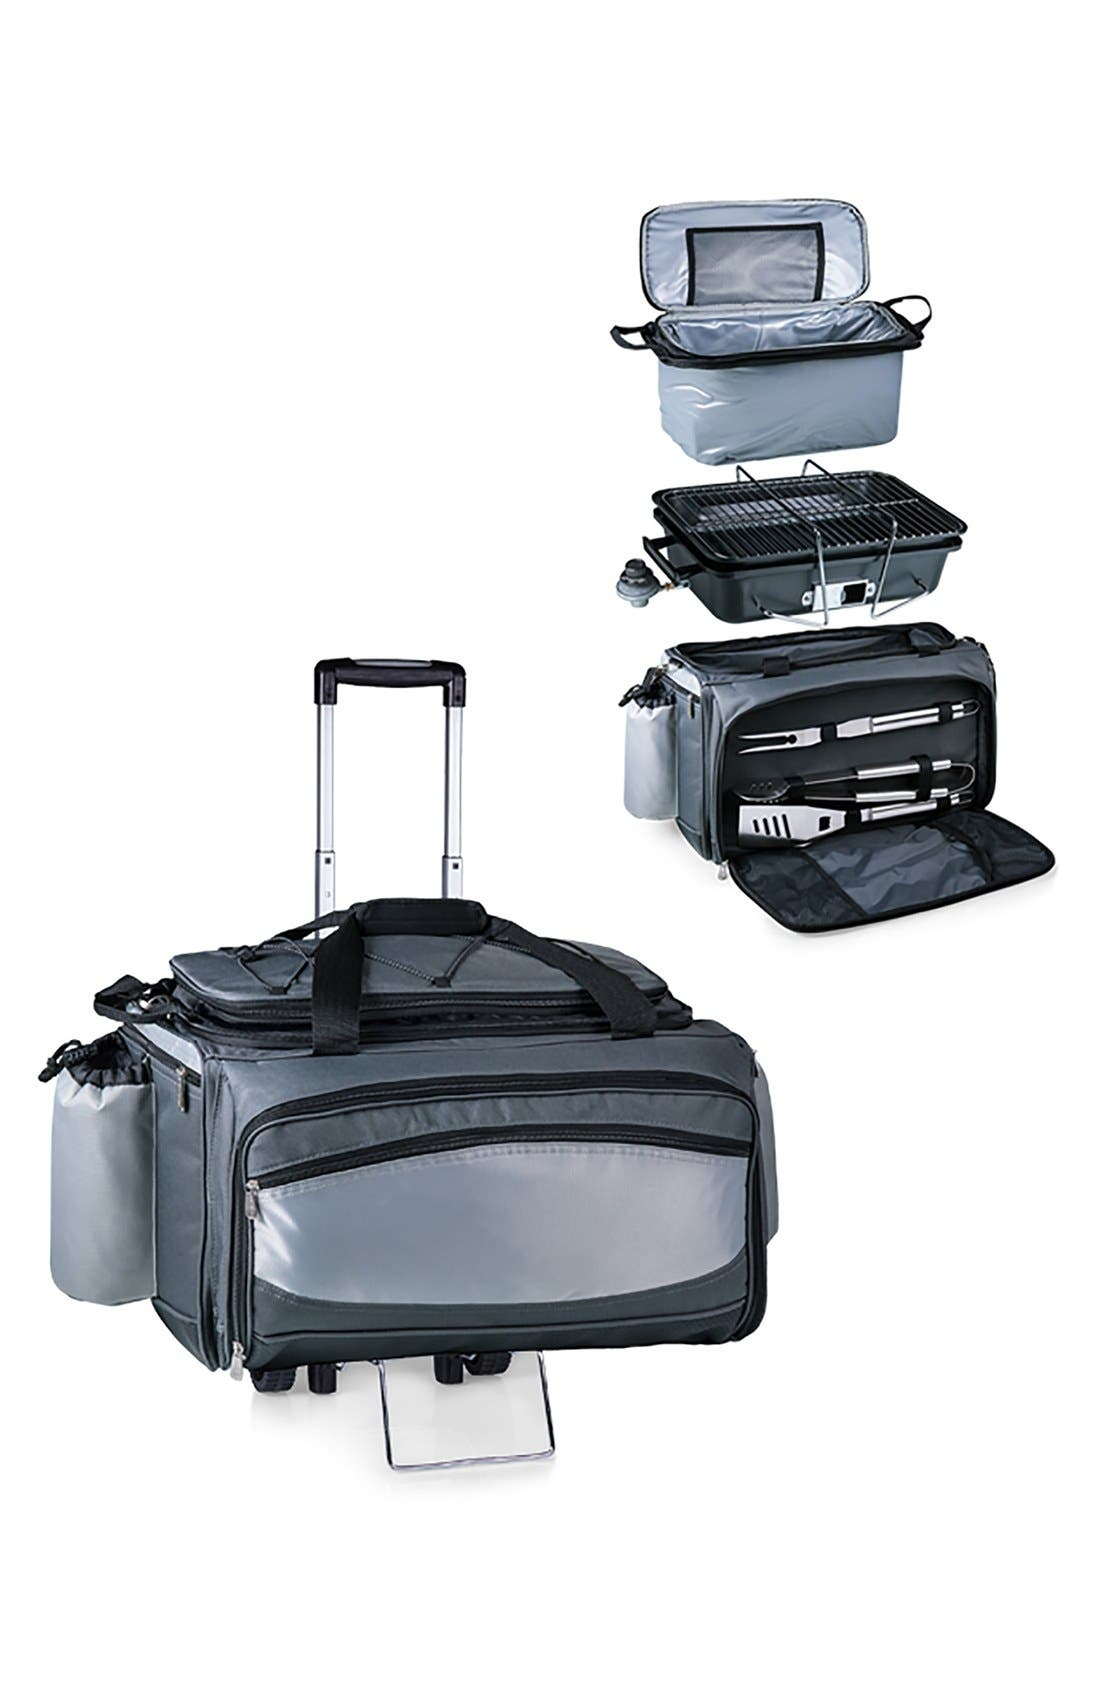 'Vulcan' Barbecue Grill & Cooler Trolley,                             Main thumbnail 1, color,                             001